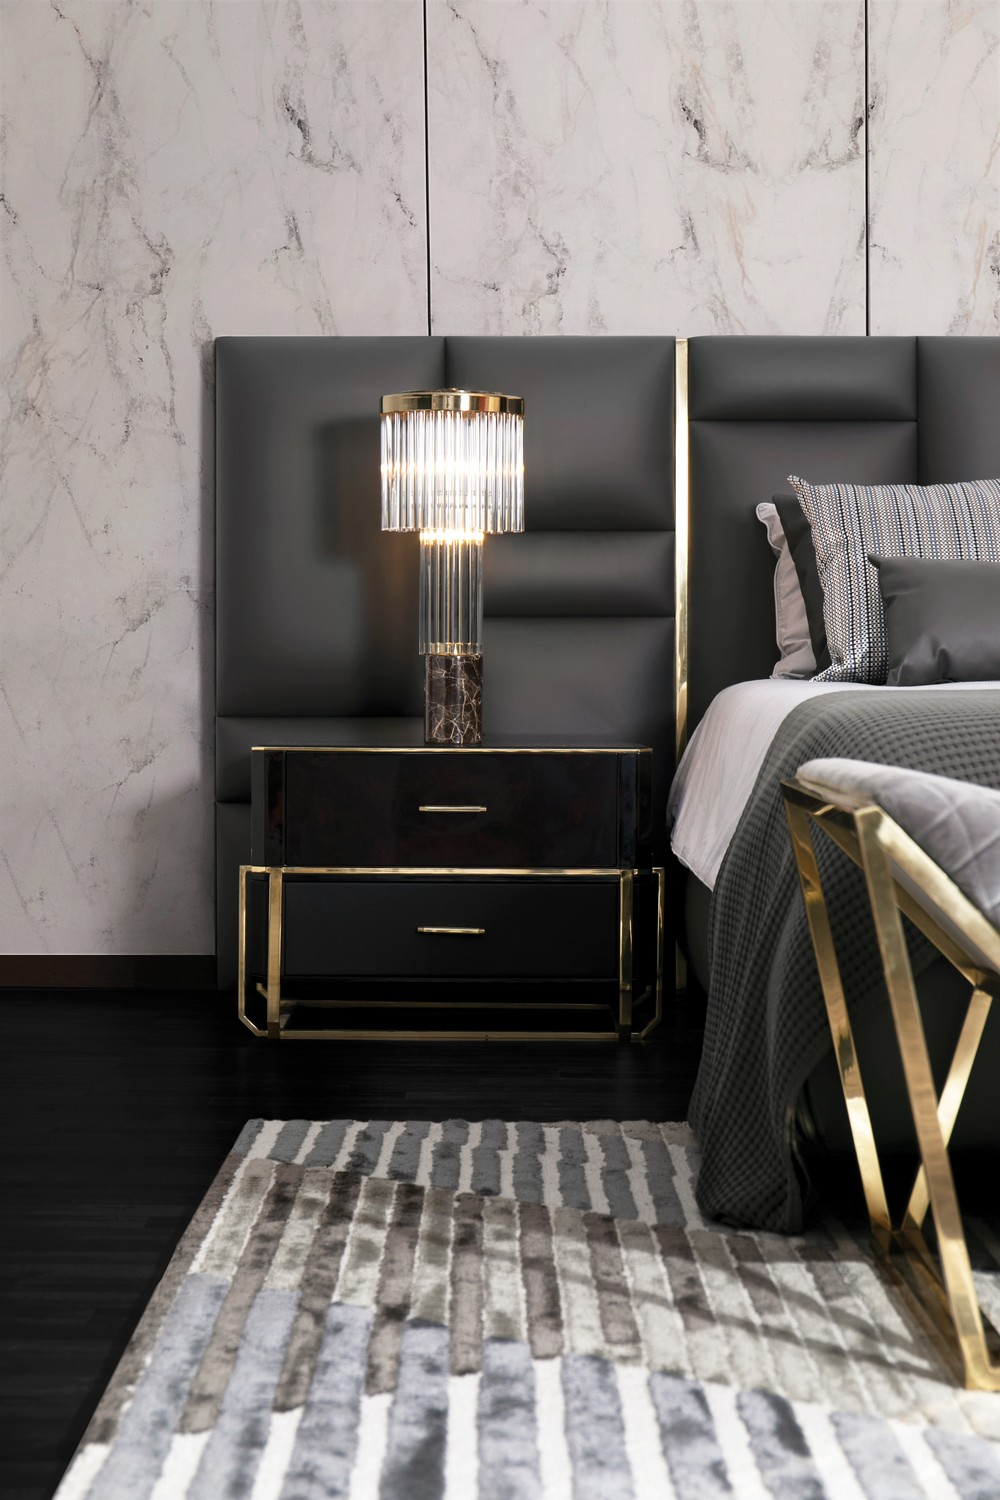 Luxury Nightstands How Highly Curated Drawer Handles Make a Change_8 luxury nightstands Luxury Nightstands: How Highly Curated Drawer Handles Make a Change Luxury Nightstands How Highly Curated Drawer Handles Make a Change 8